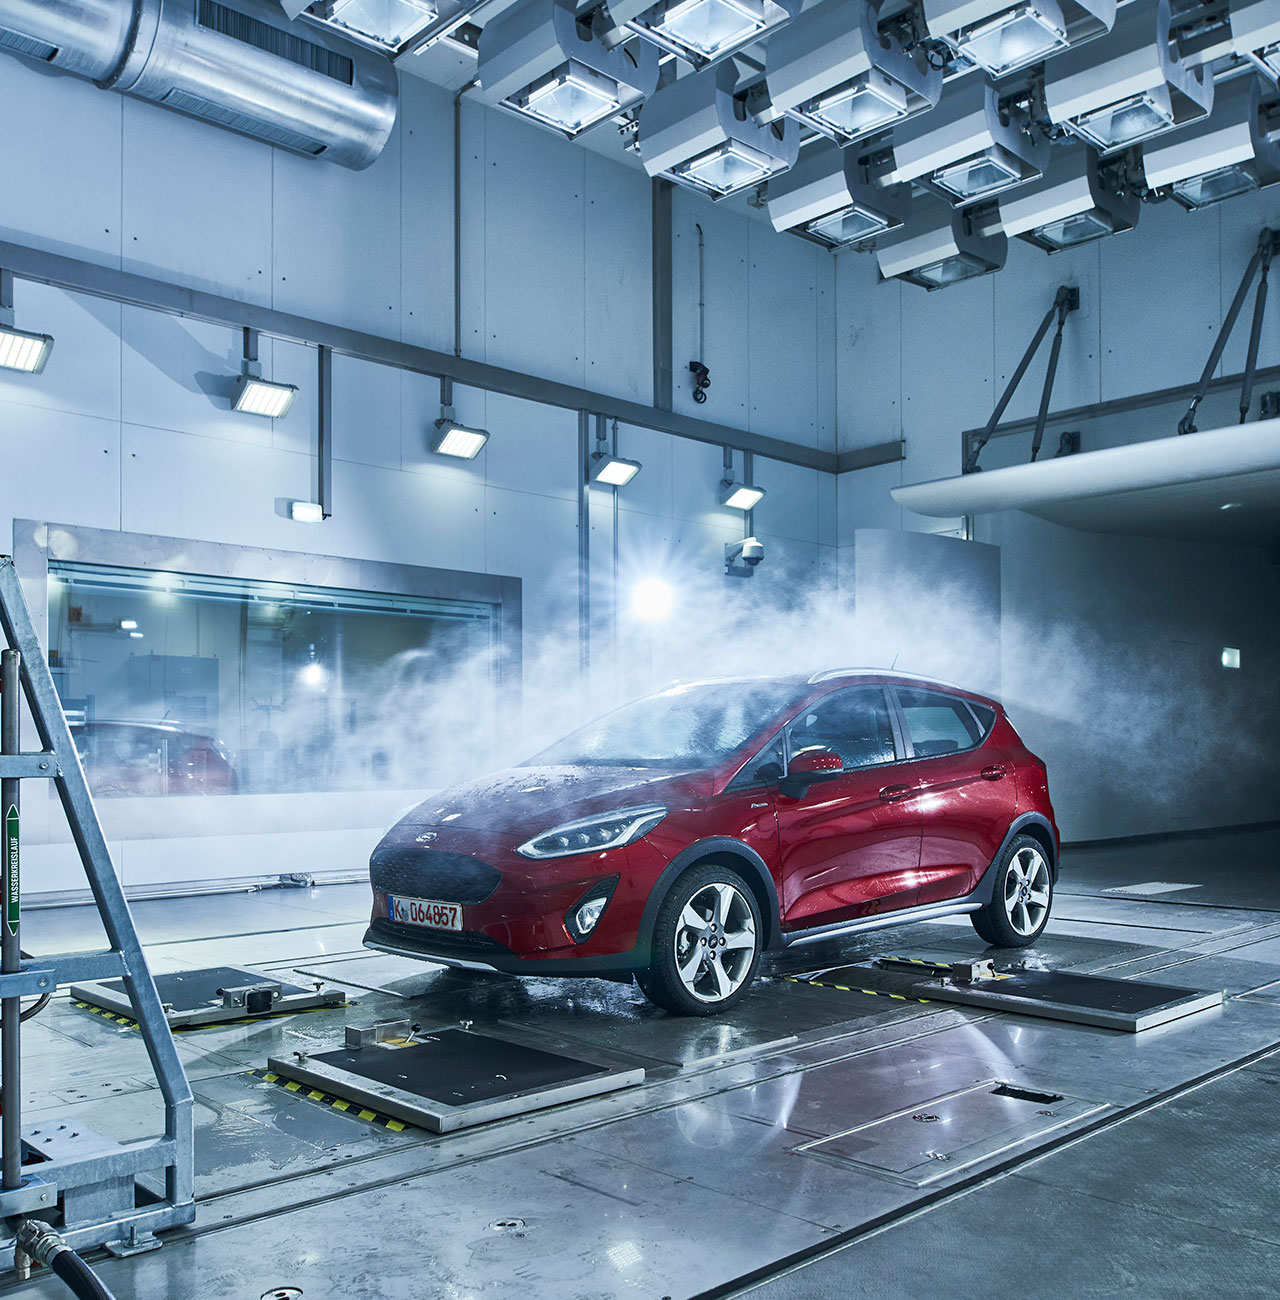 the new heat on ford Ford predicts that the remote start system will help the vehicle's exhaust catalyst heat up more quickly, thereby reducing hydrocarbon, carbon monoxide and nitrogen oxide emissions by up to 75.